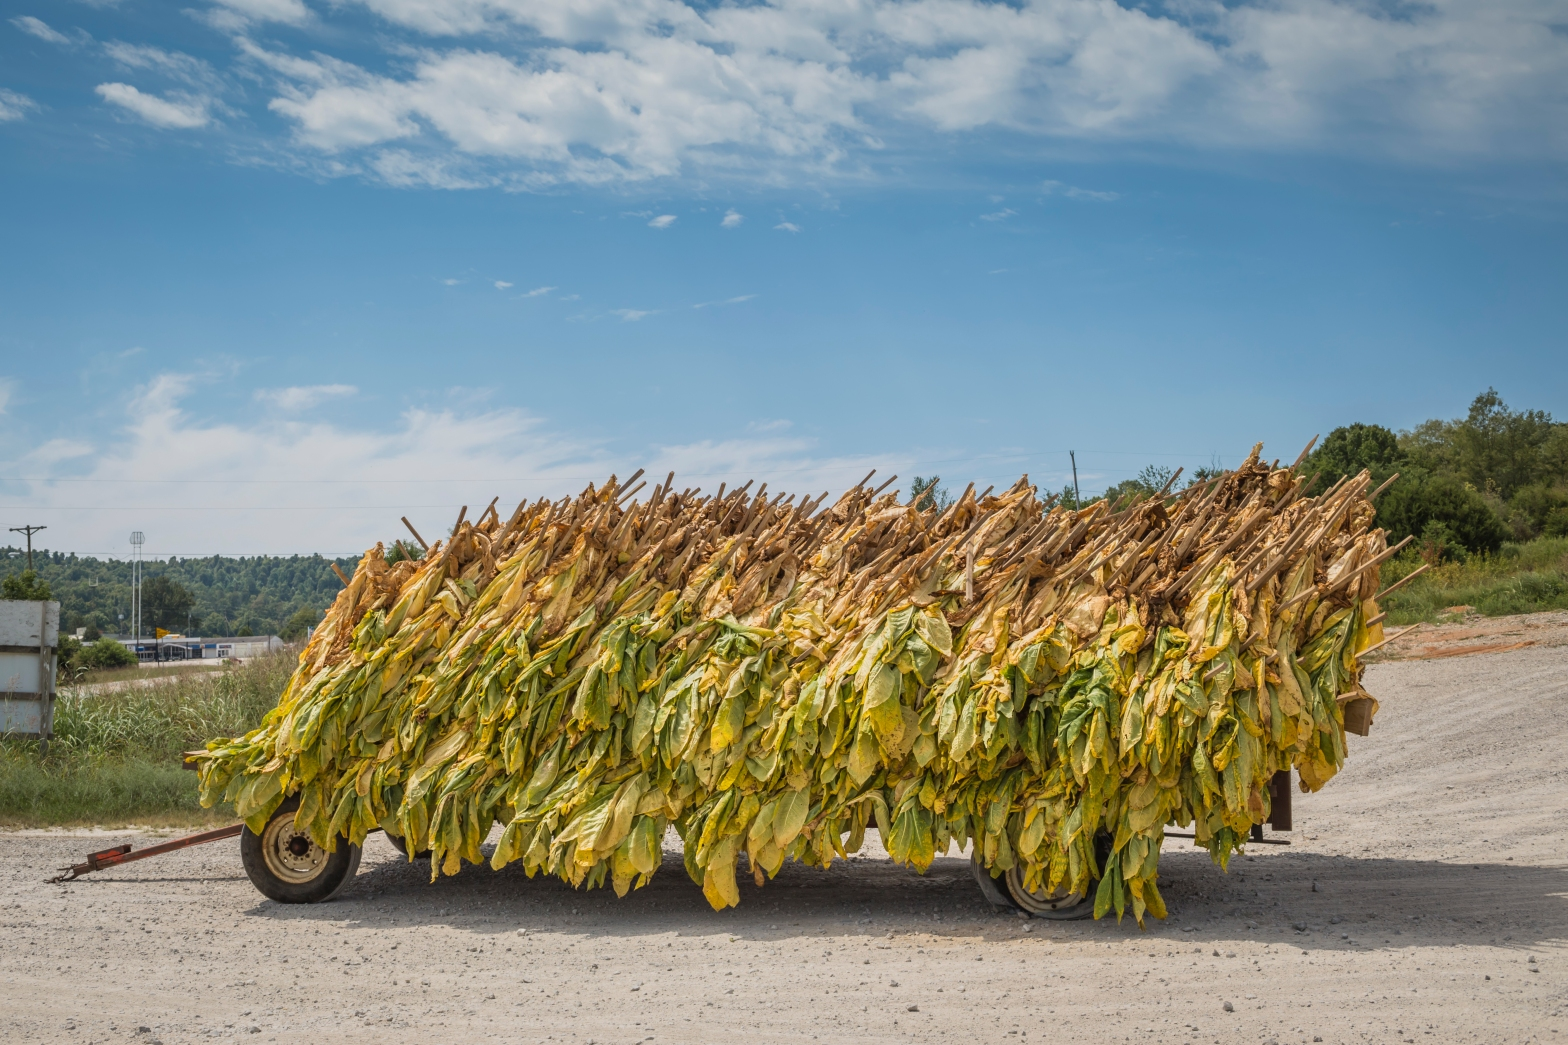 Tobacco drying on a trailer in Kentucky